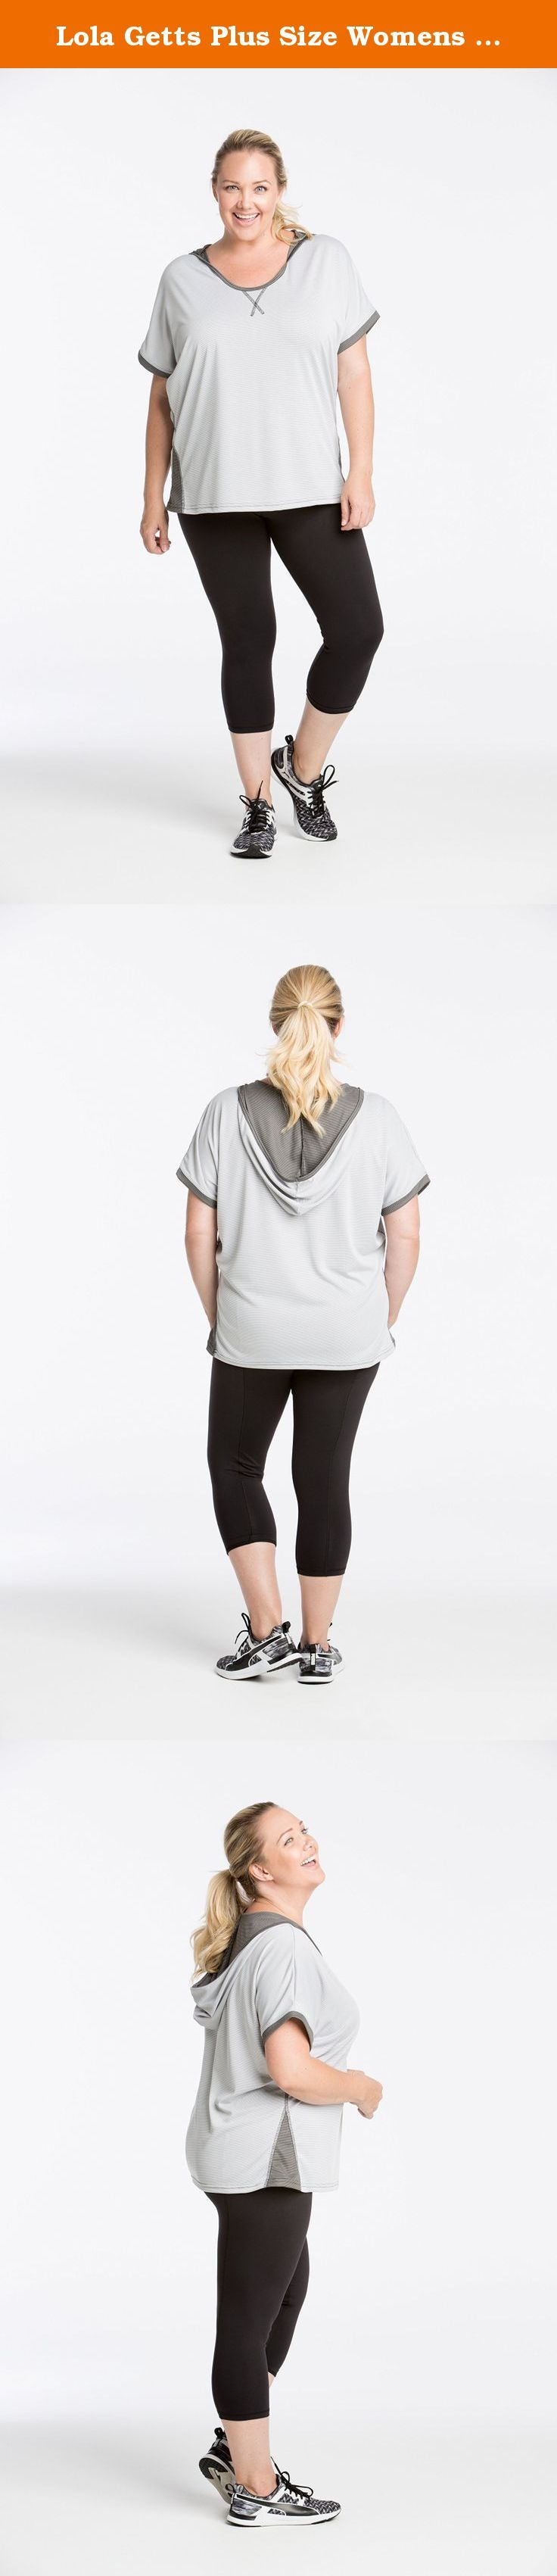 Lola Getts Plus Size Womens Knockout Short Sleeve Hoodie (3/26-28, white/charcoal). The Lola Knockout Short Sleeve Hoodie is made with lightweight performance fabric that wicks and breathes in order to keep you dry during any workout. Perfect for the curvy girl who wants to look stylish during her workout but also wants the perfect amount of arm coverage. With a flowing open back concept and soft Bamboo fabric, you'll stay cool but look hot. The top is flattering for all bodies, and the...